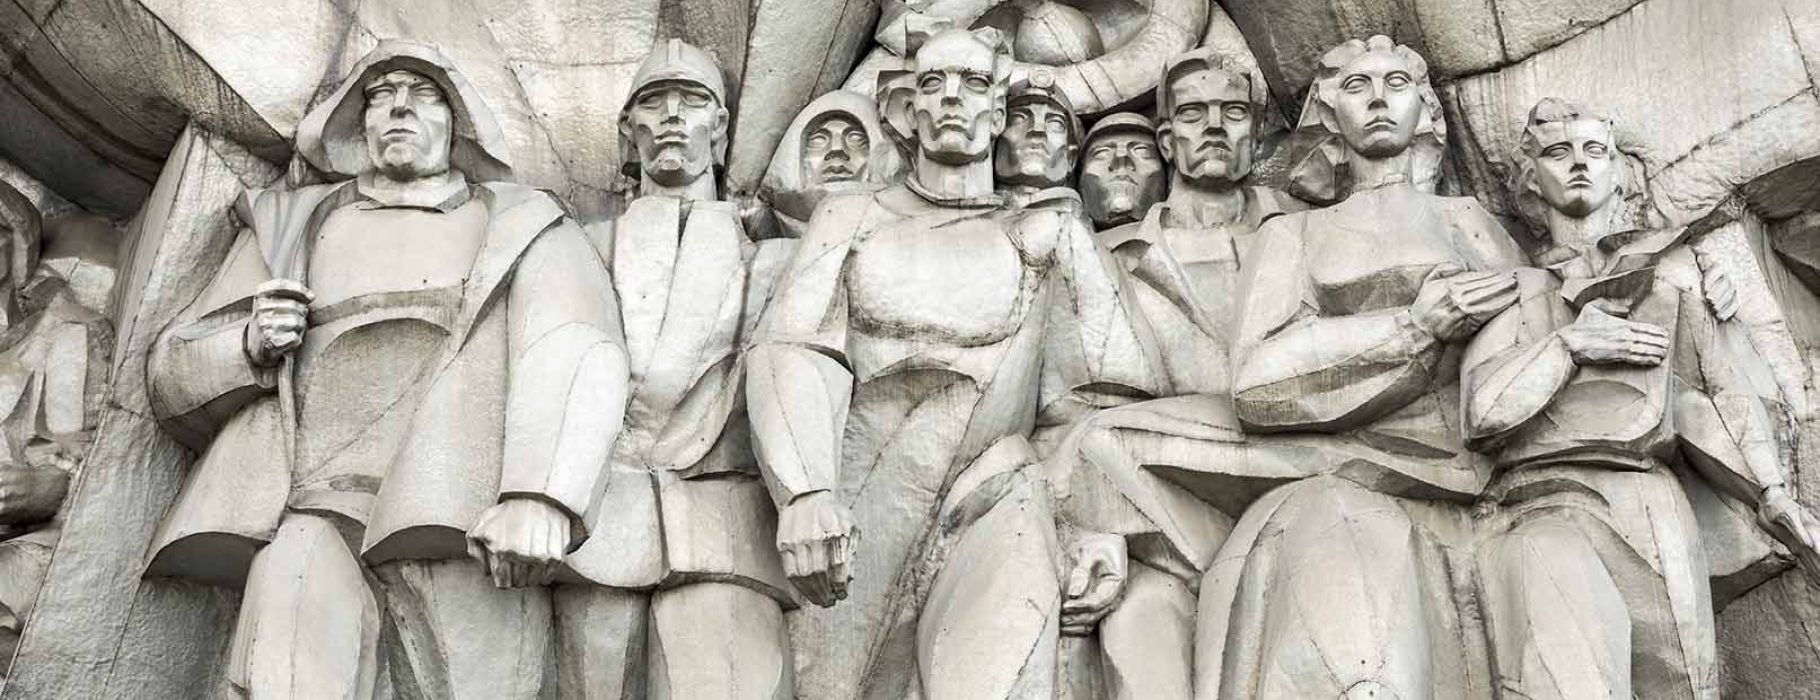 Soviet-Era Bas-relief on the facade of a building in Minsk, Belarus